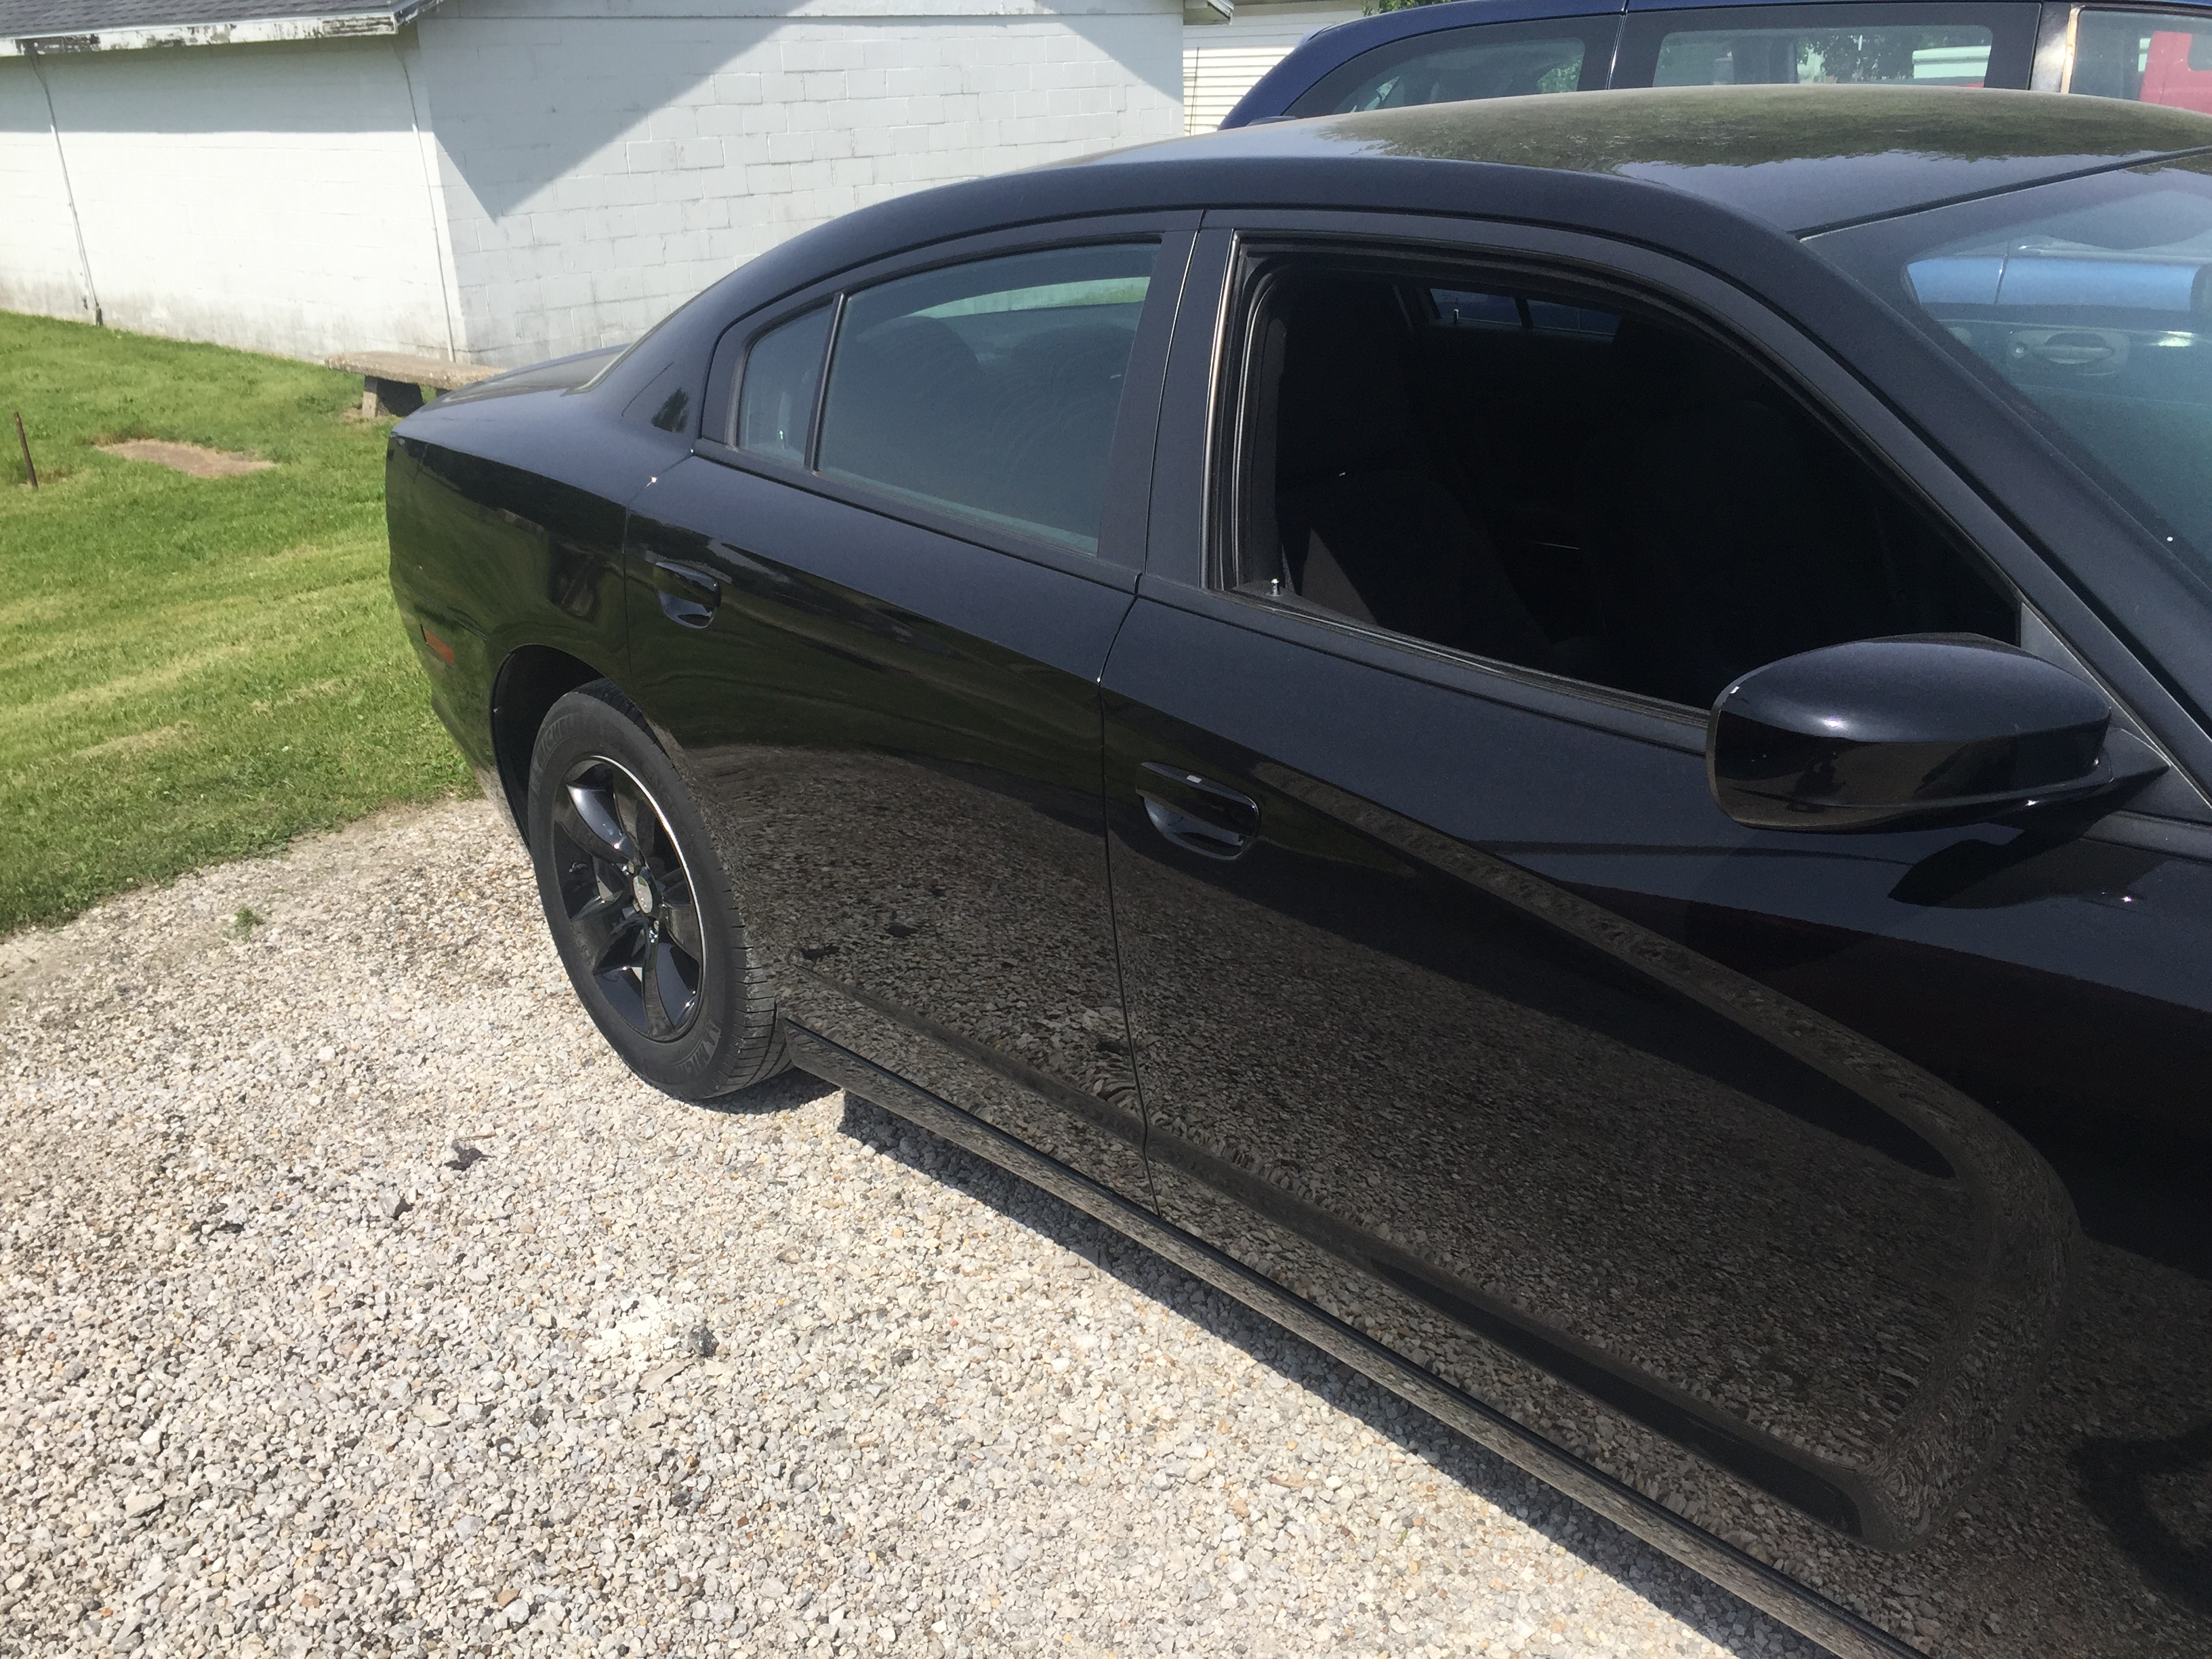 2013 Dodge Charger, Dent Repair Rear Quarter, Http://217dent.com